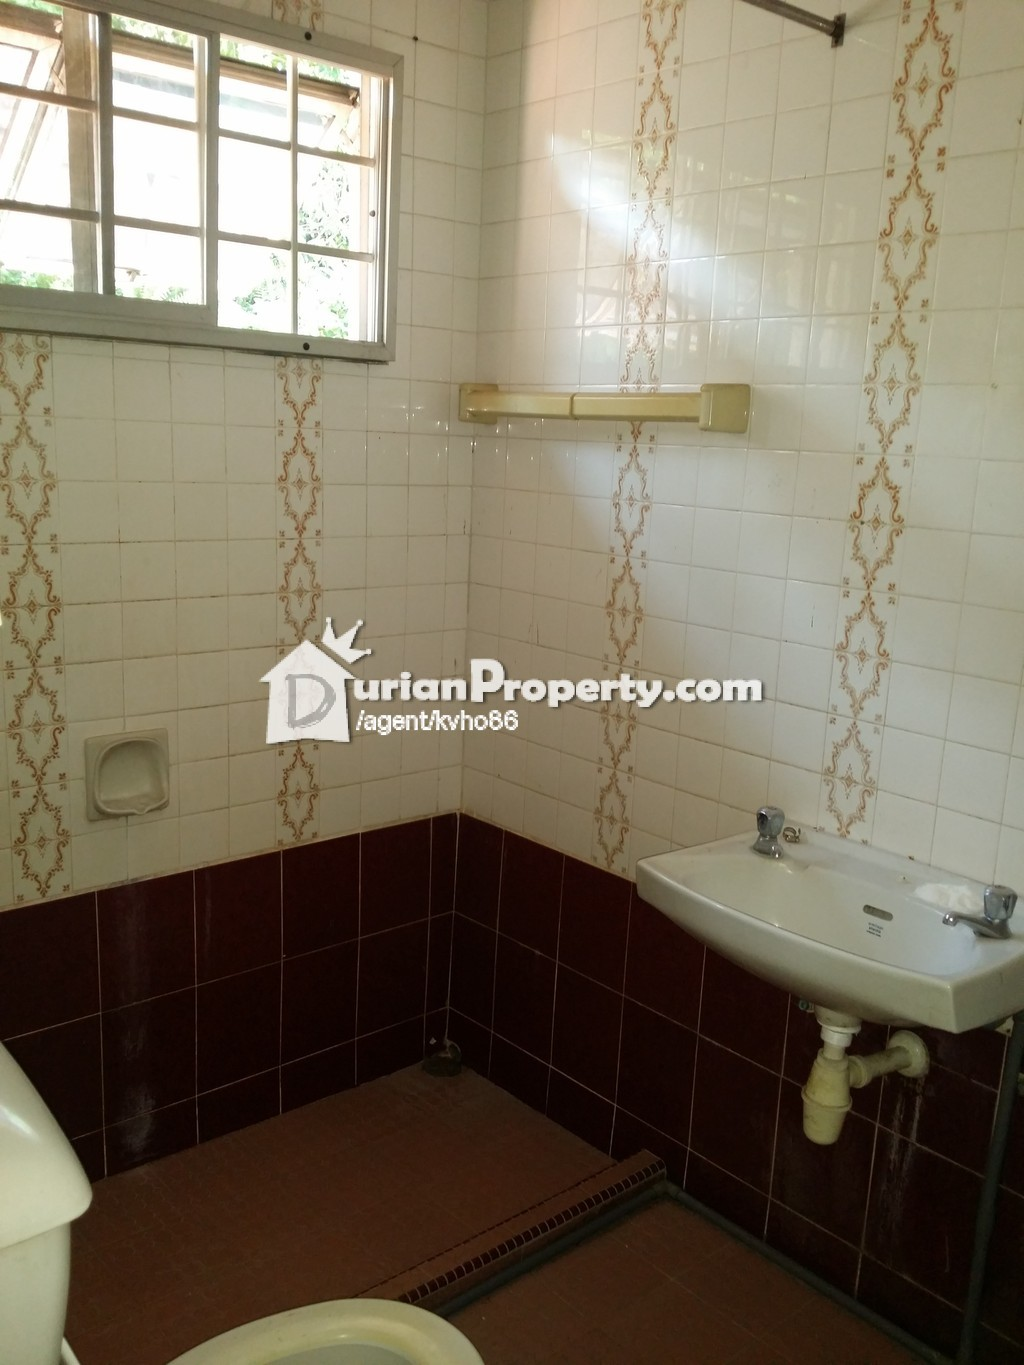 bungalow house for rent at old klang road kuala lumpur